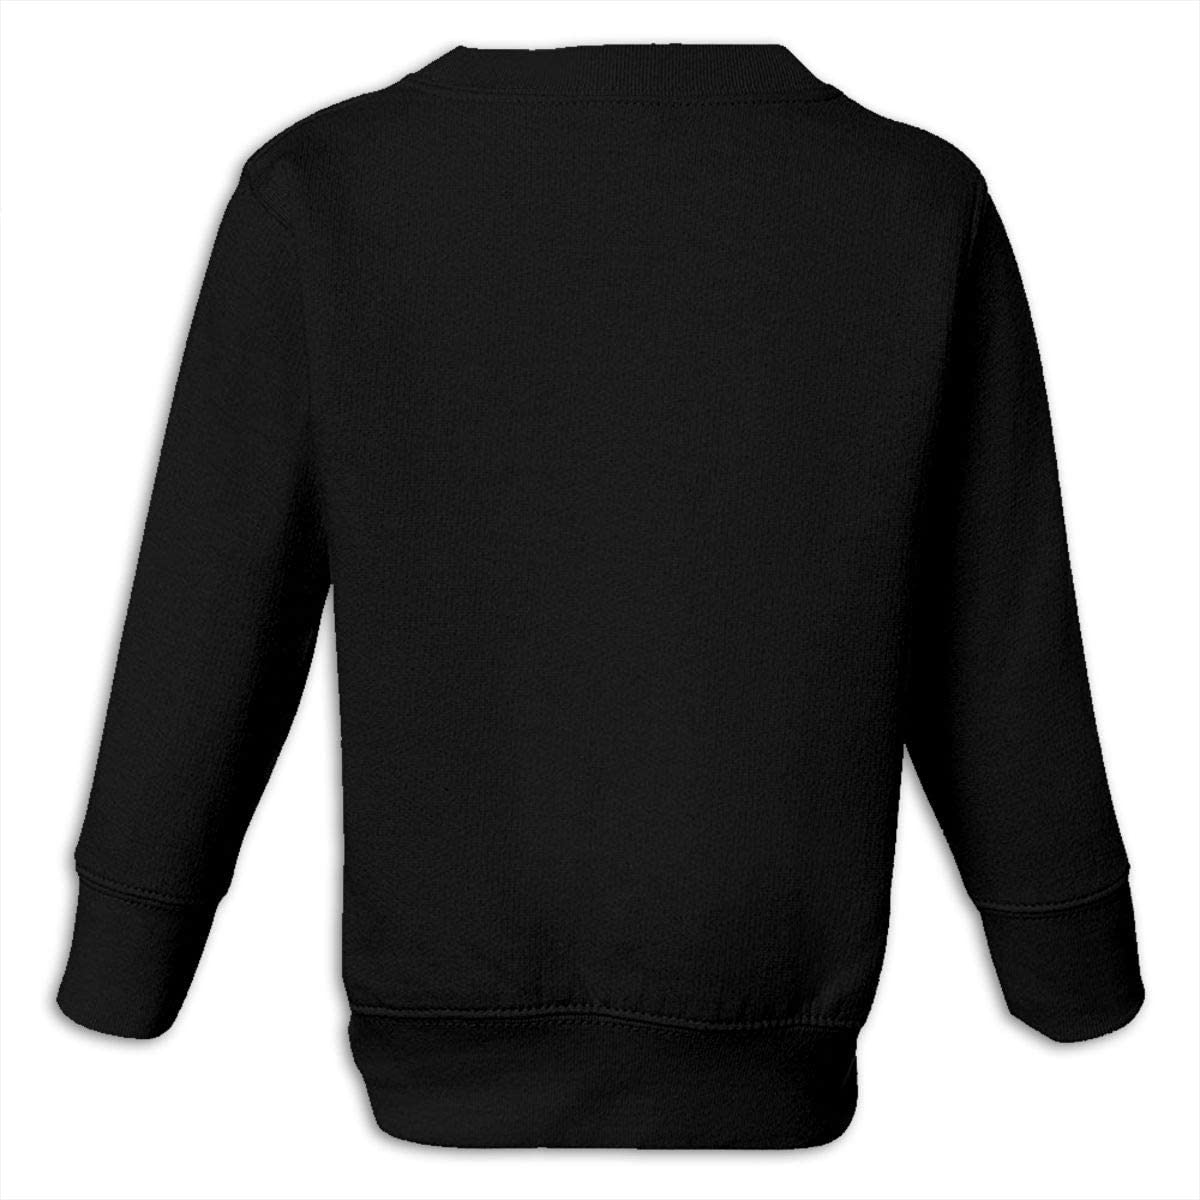 FXDFBD Corona Extra Beer Stylish Round Collar Sweaters Toddler Juvenile Sweatshirt Pullover for Kids